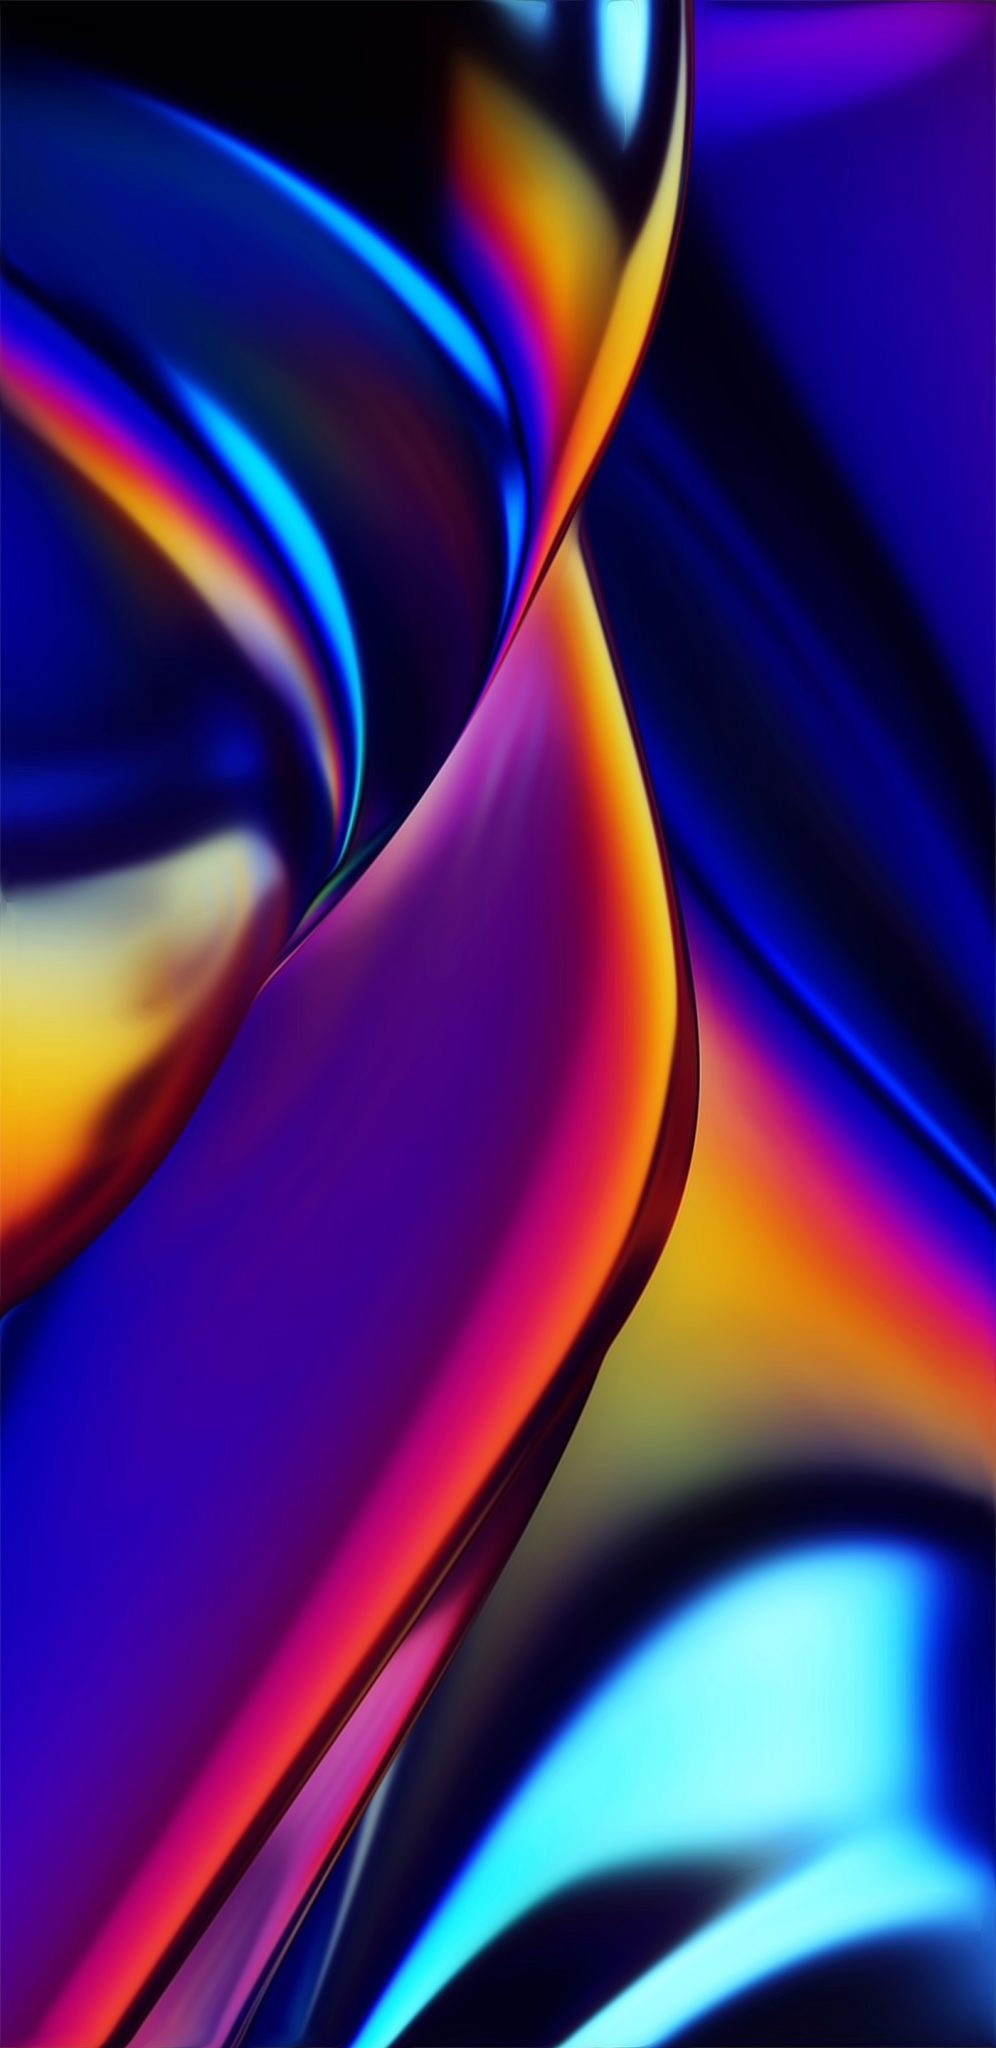 Download Apple Pro Display Xdr Wallpapers 19 Droidviews